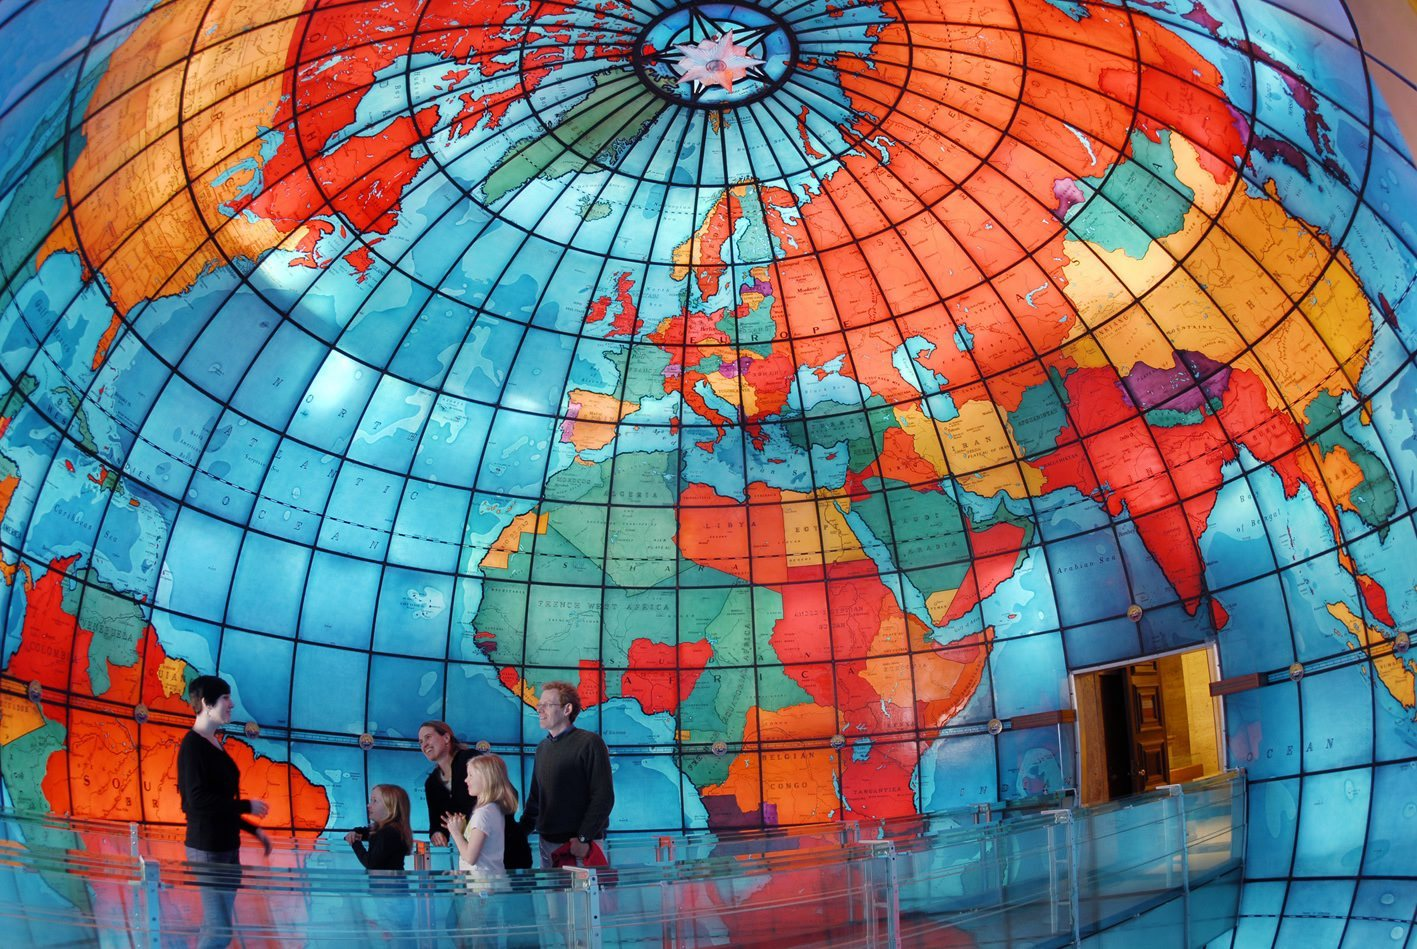 Visit the Mapparium